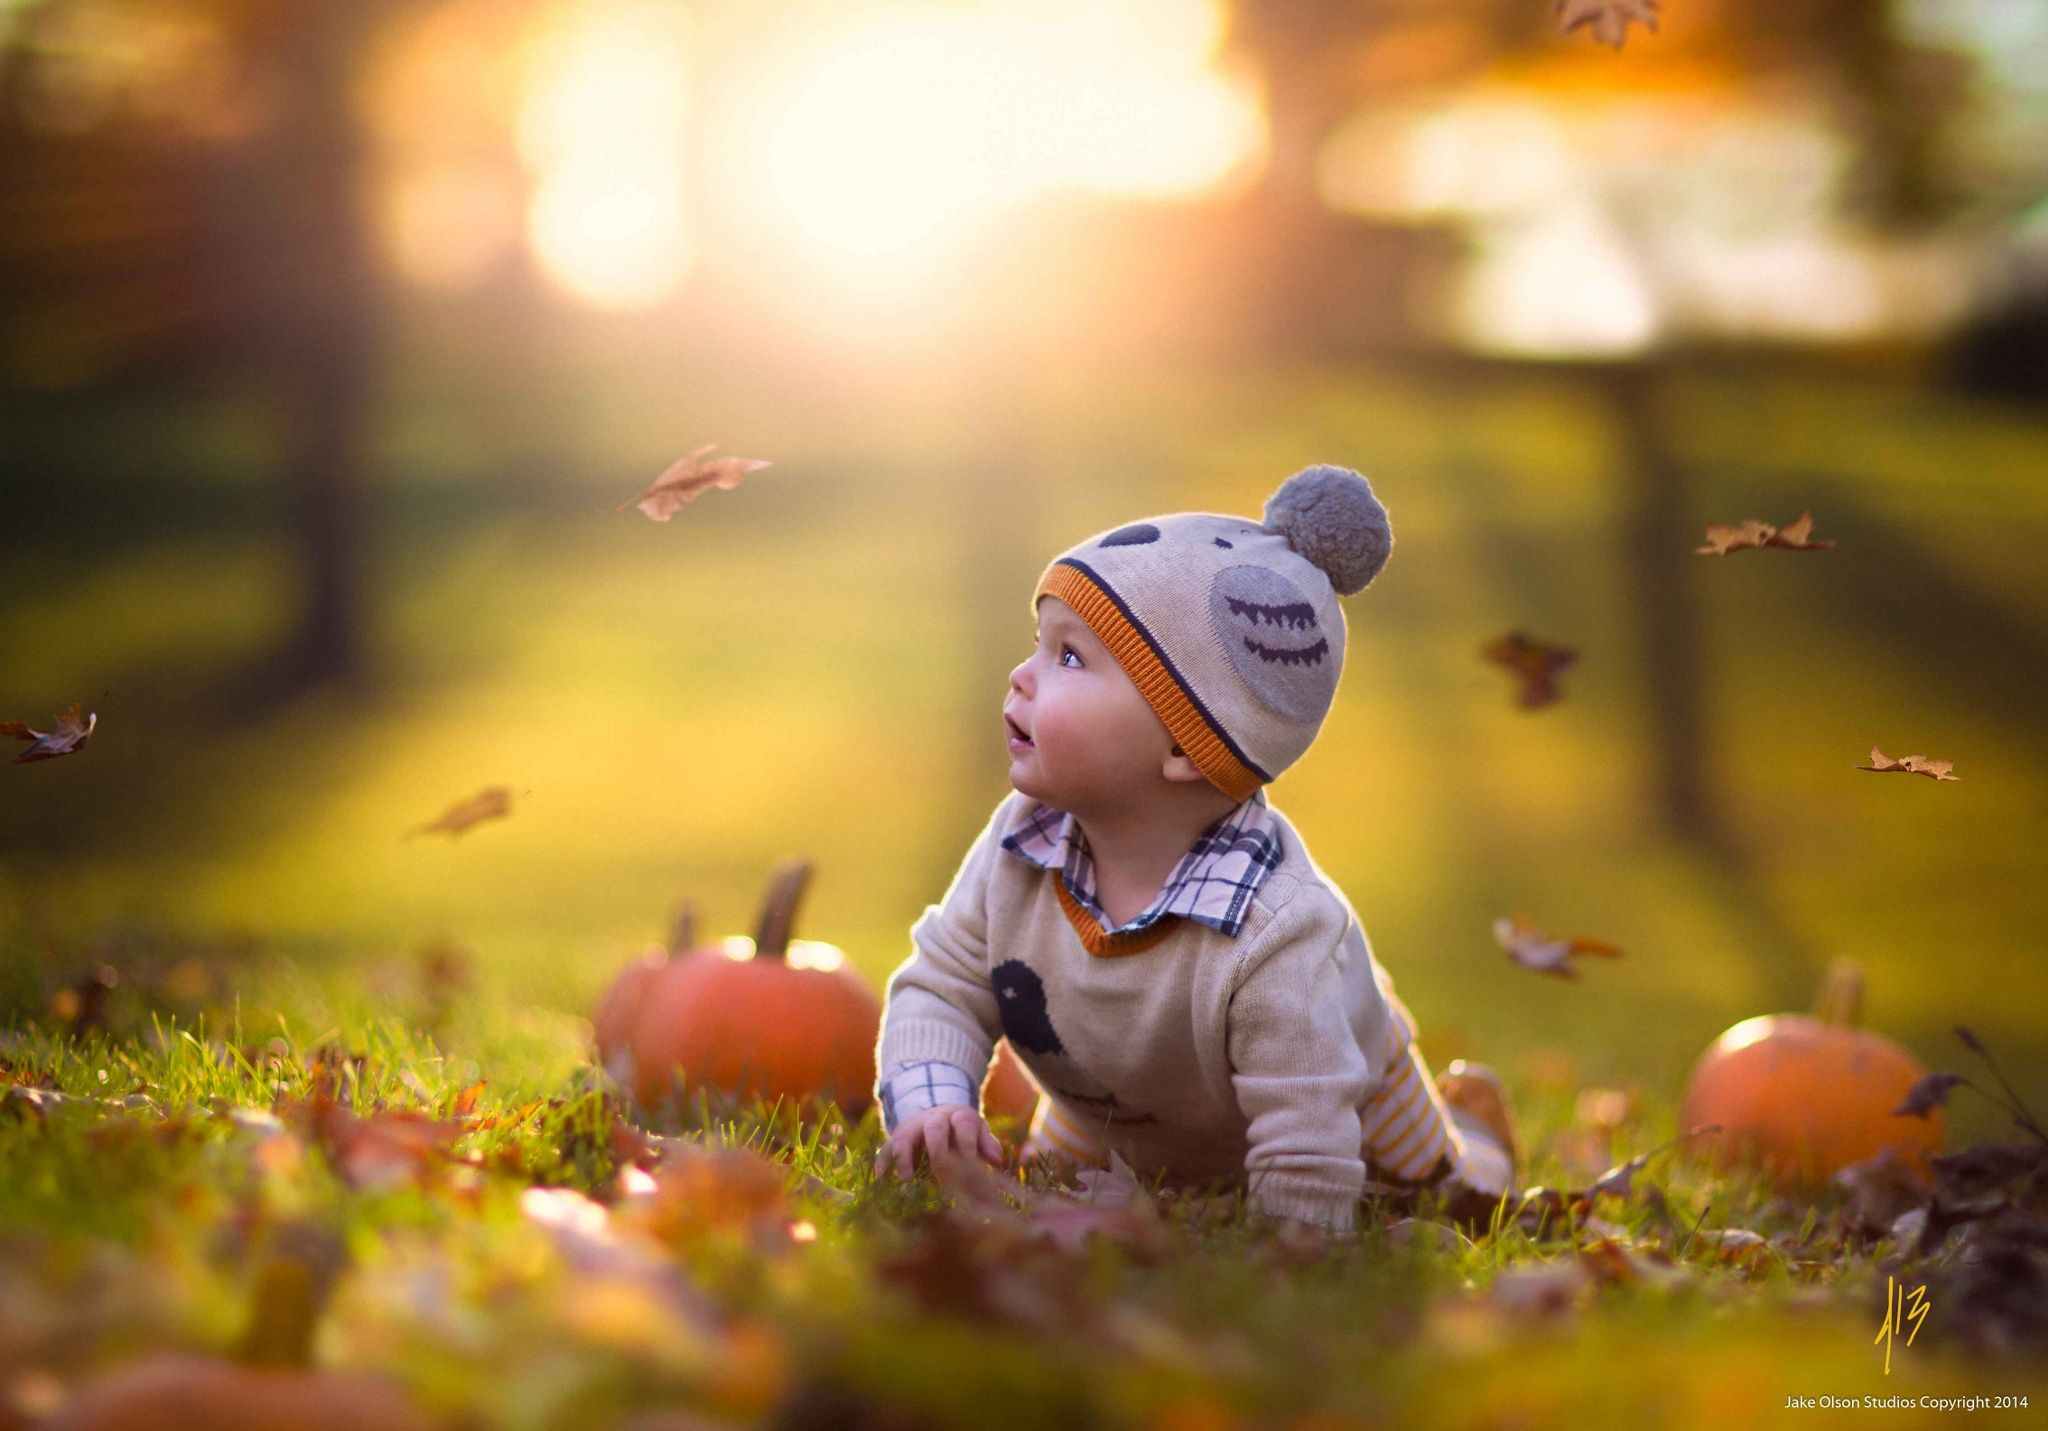 Autumn Moment by Jake Olson Studios on 500px